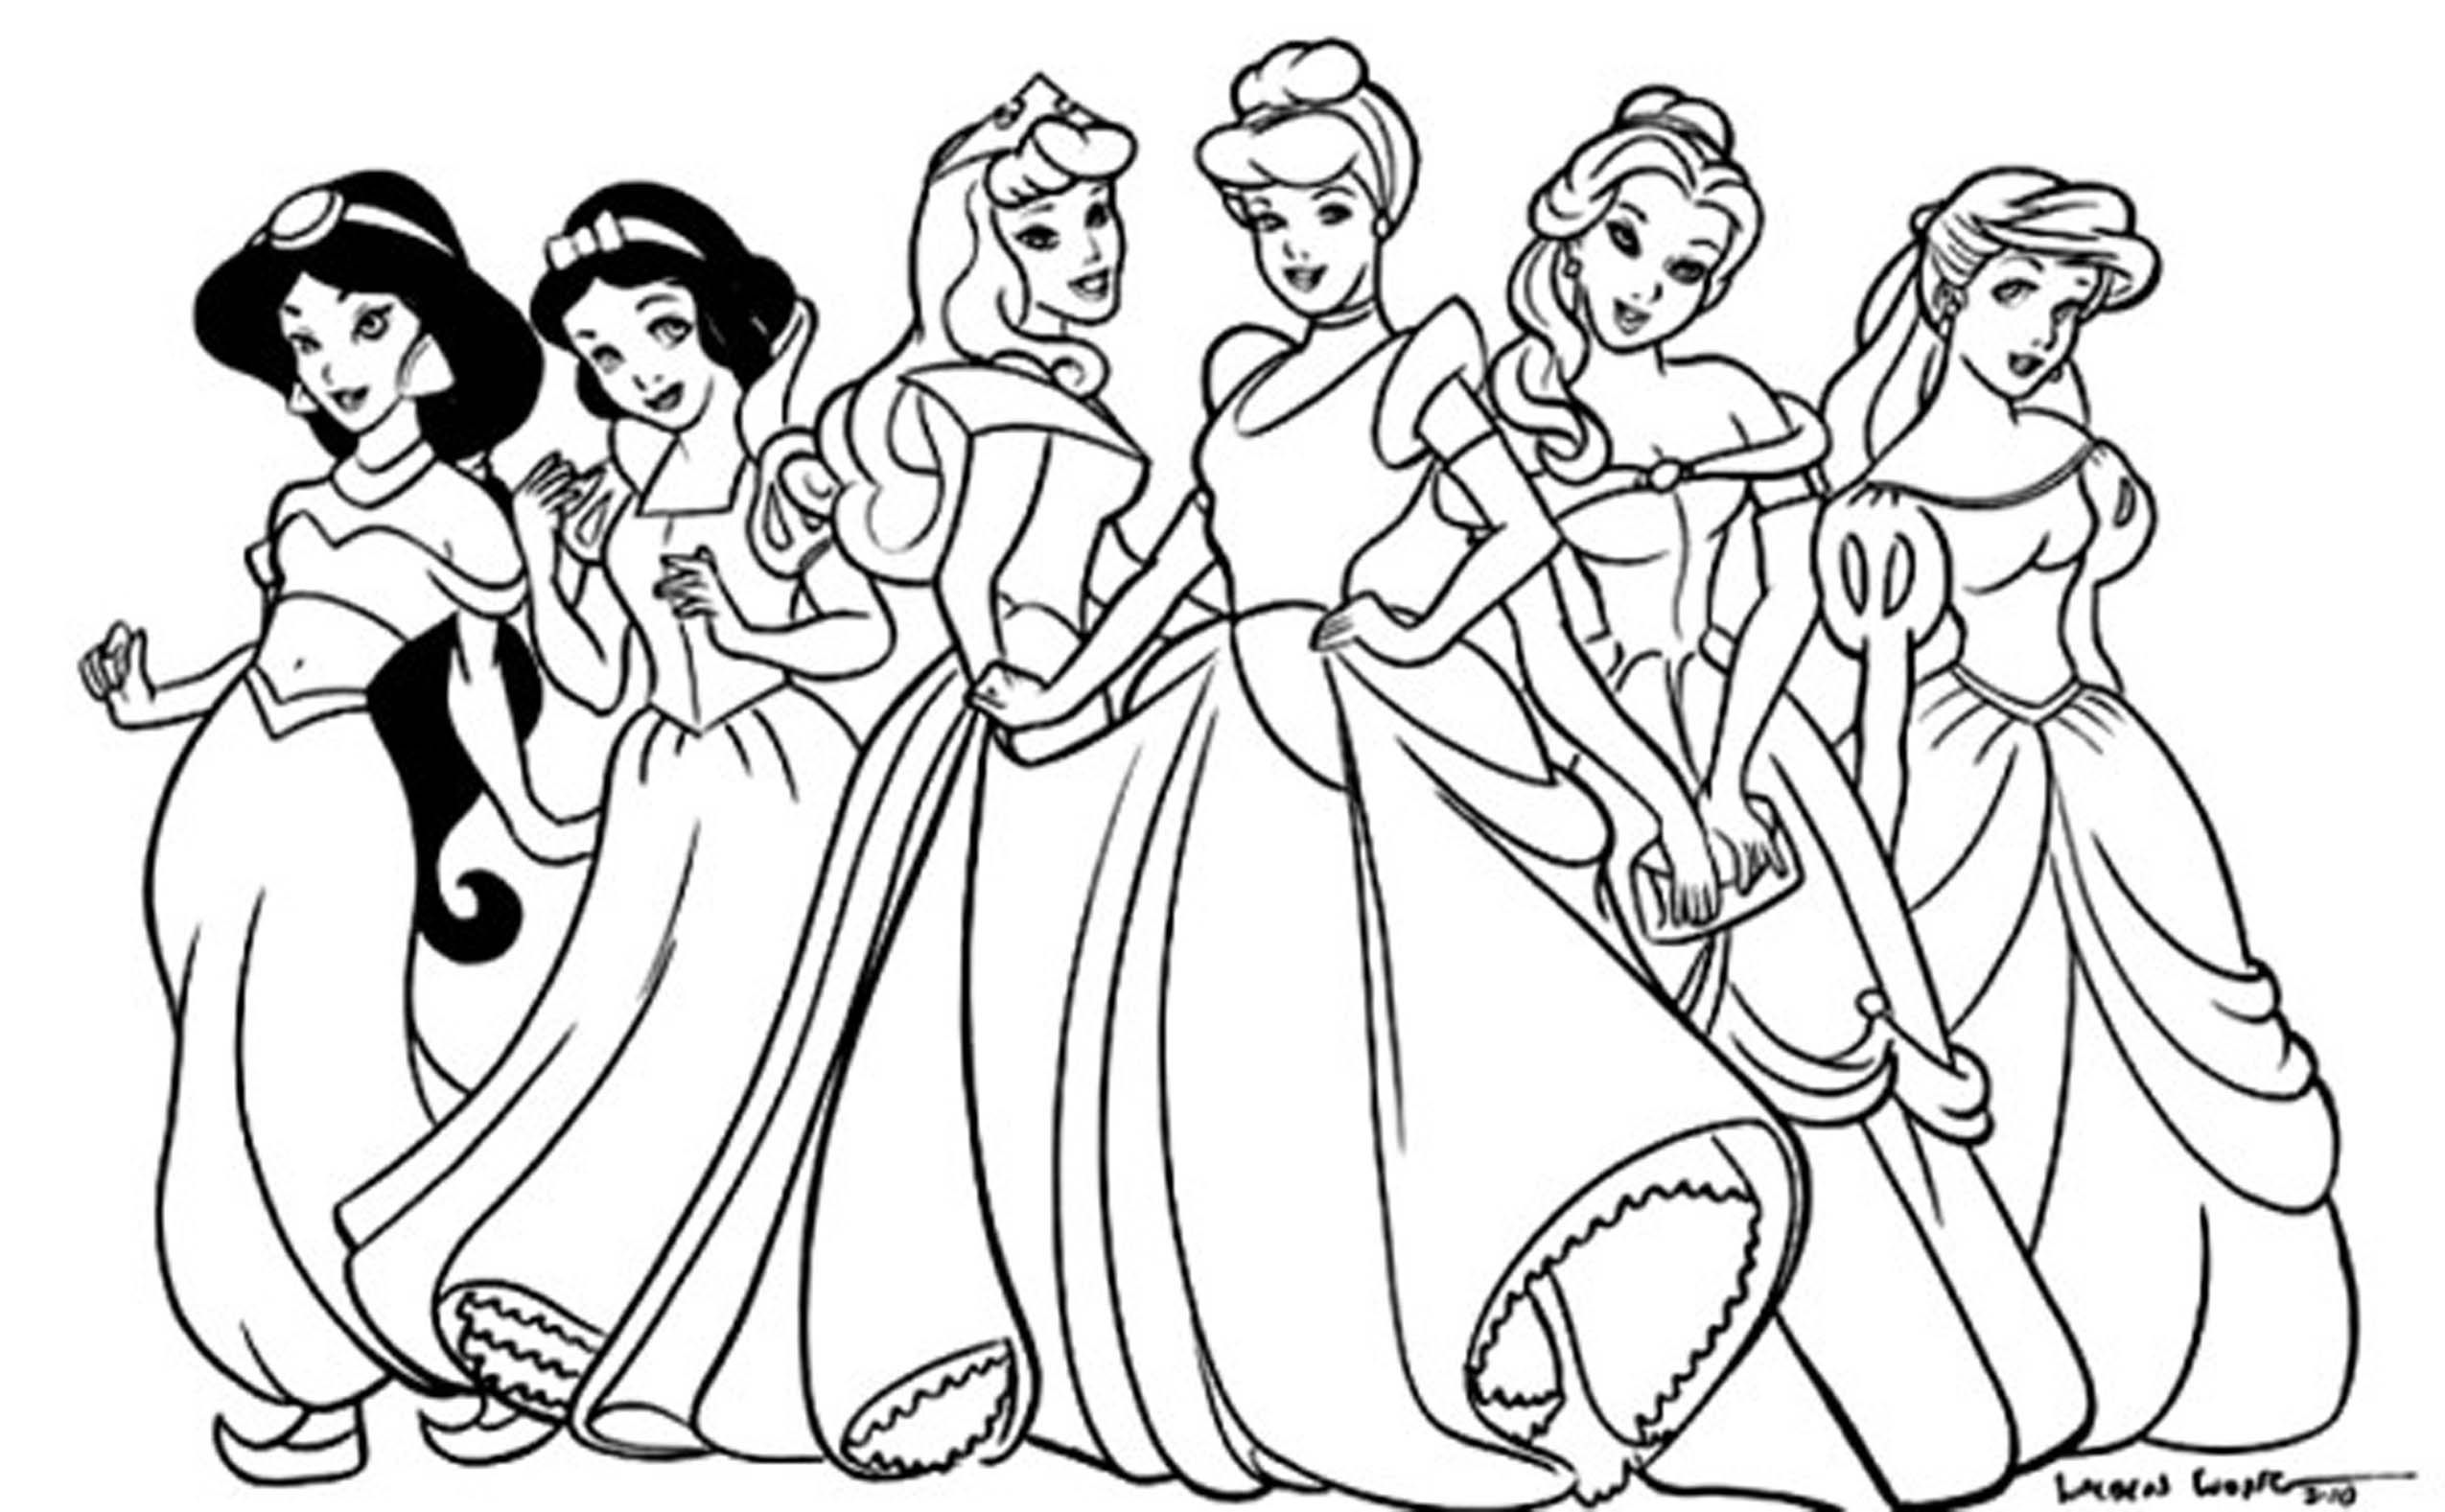 Disney Princess Coloring Pages | Ausmalbilder Kinder | Pinterest ...